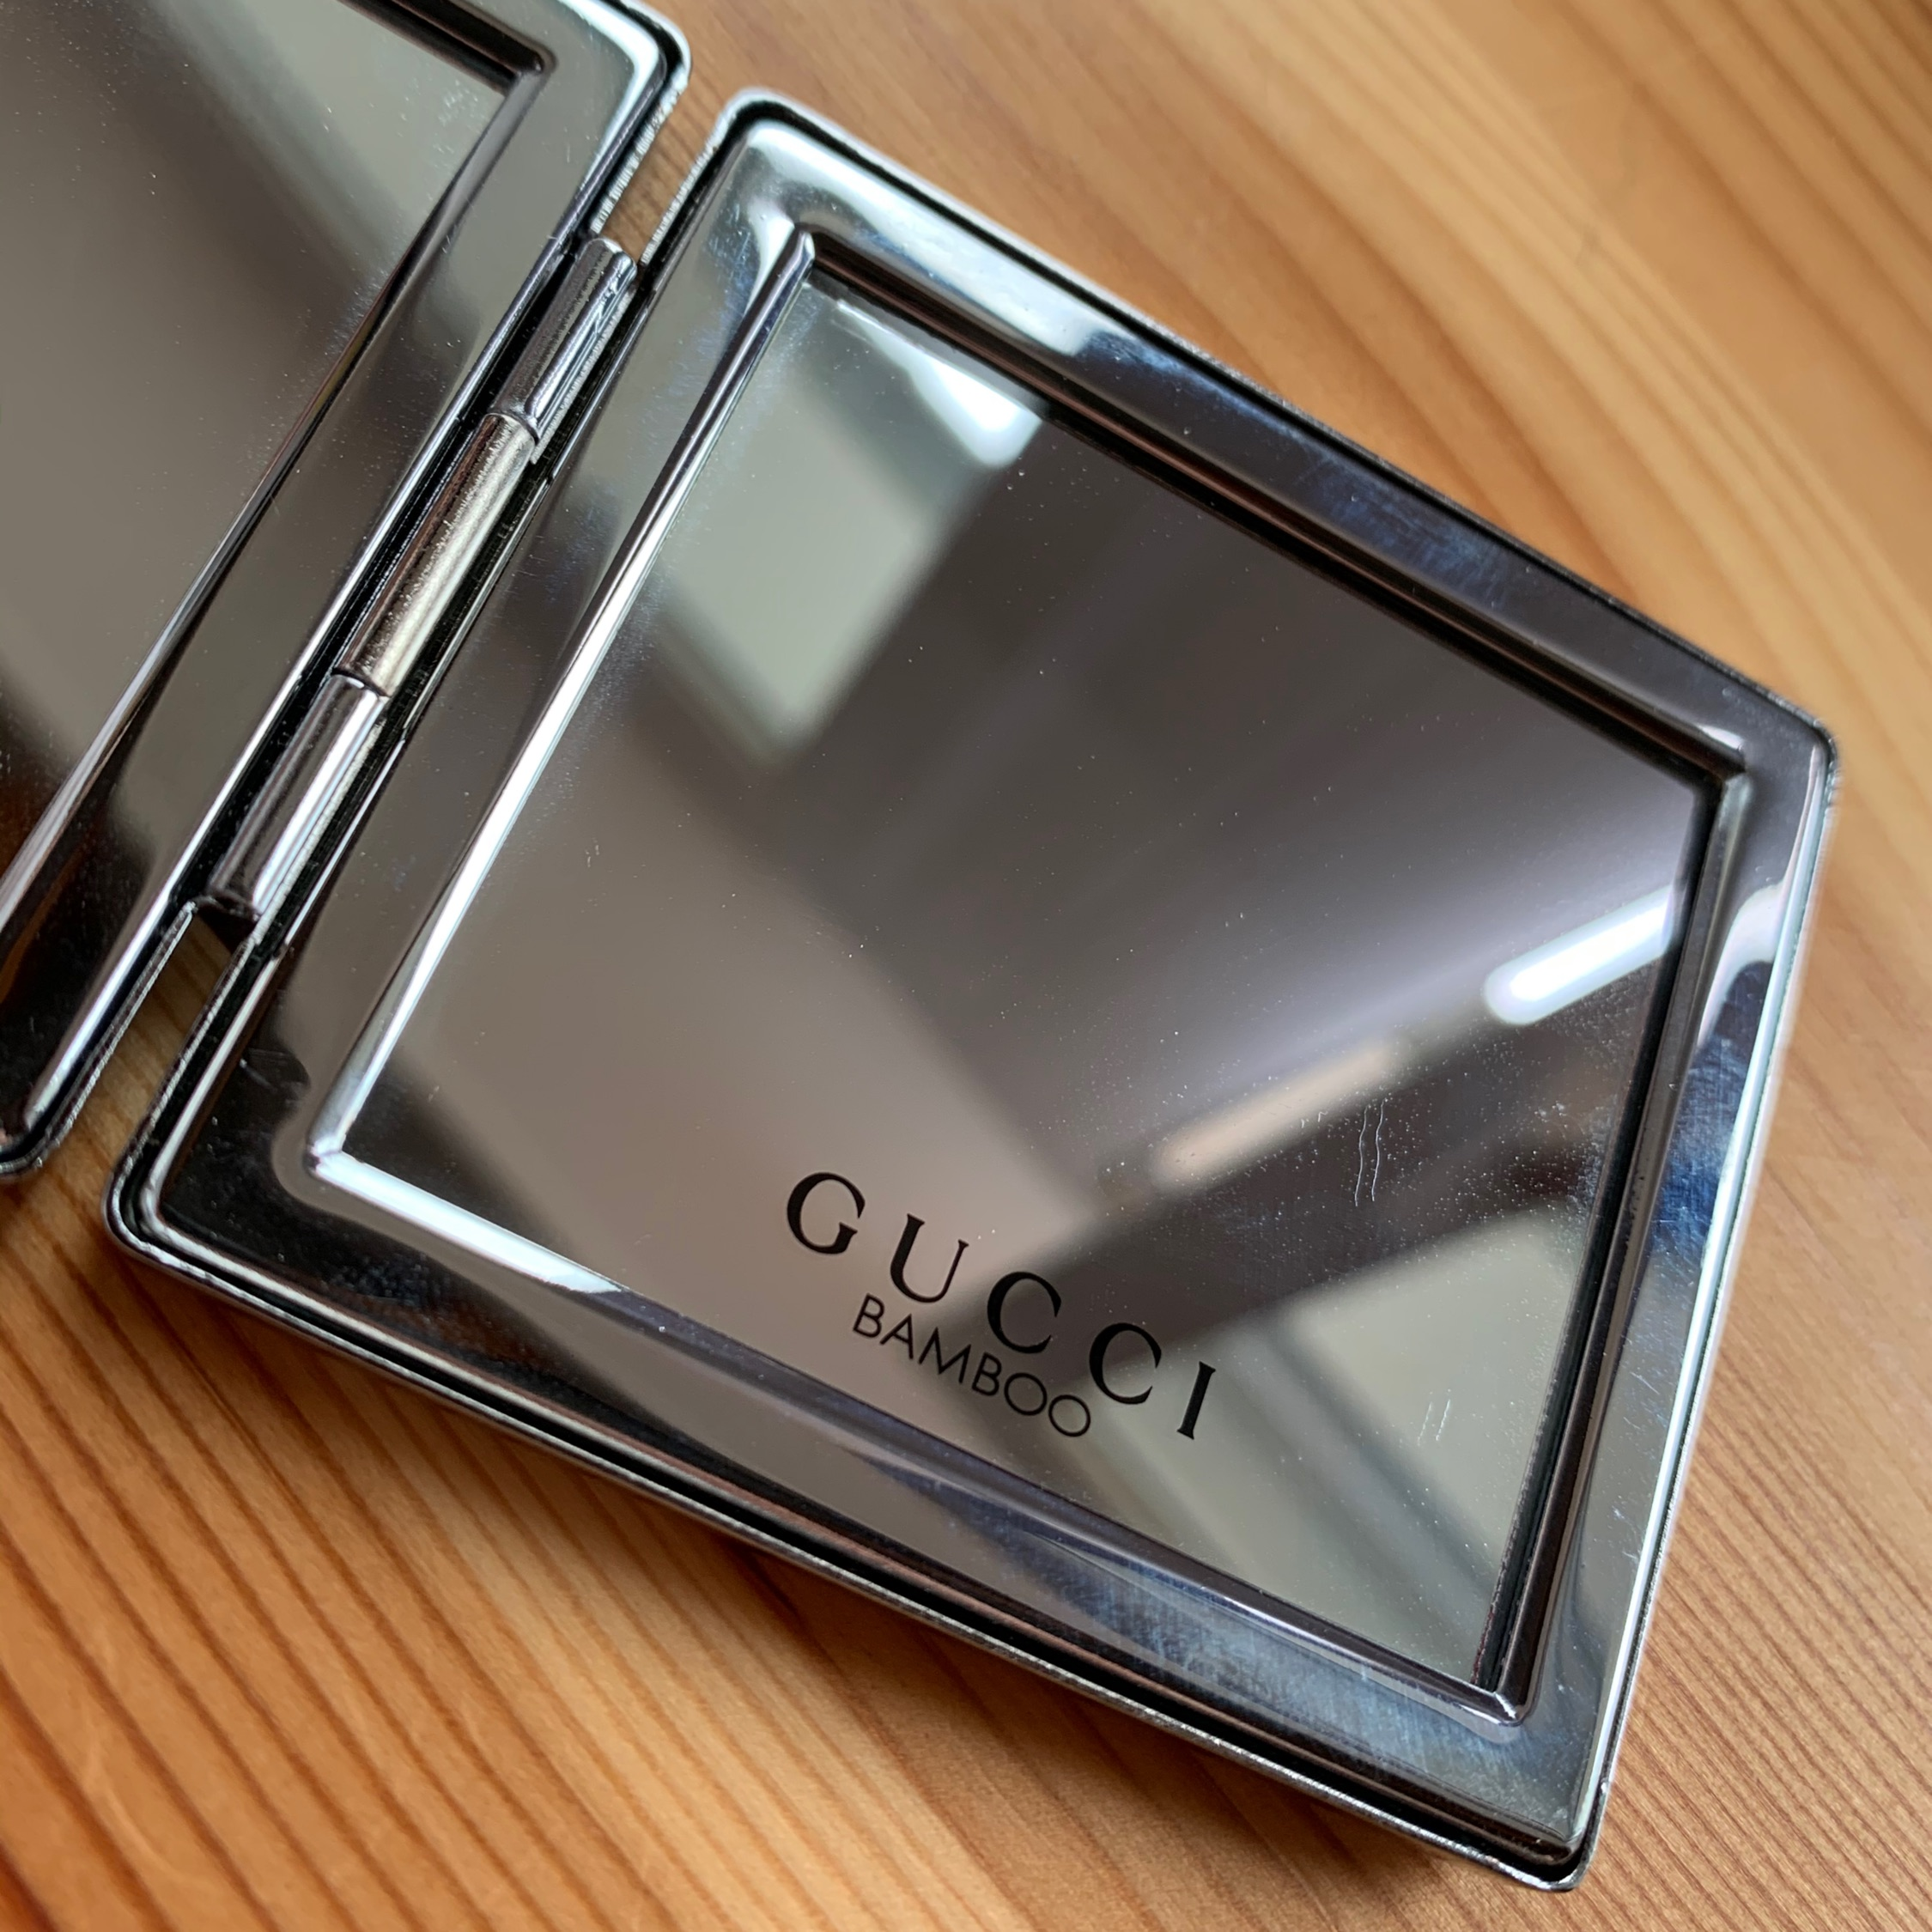 Gucci Bamboo Mirror (Sent Offers)